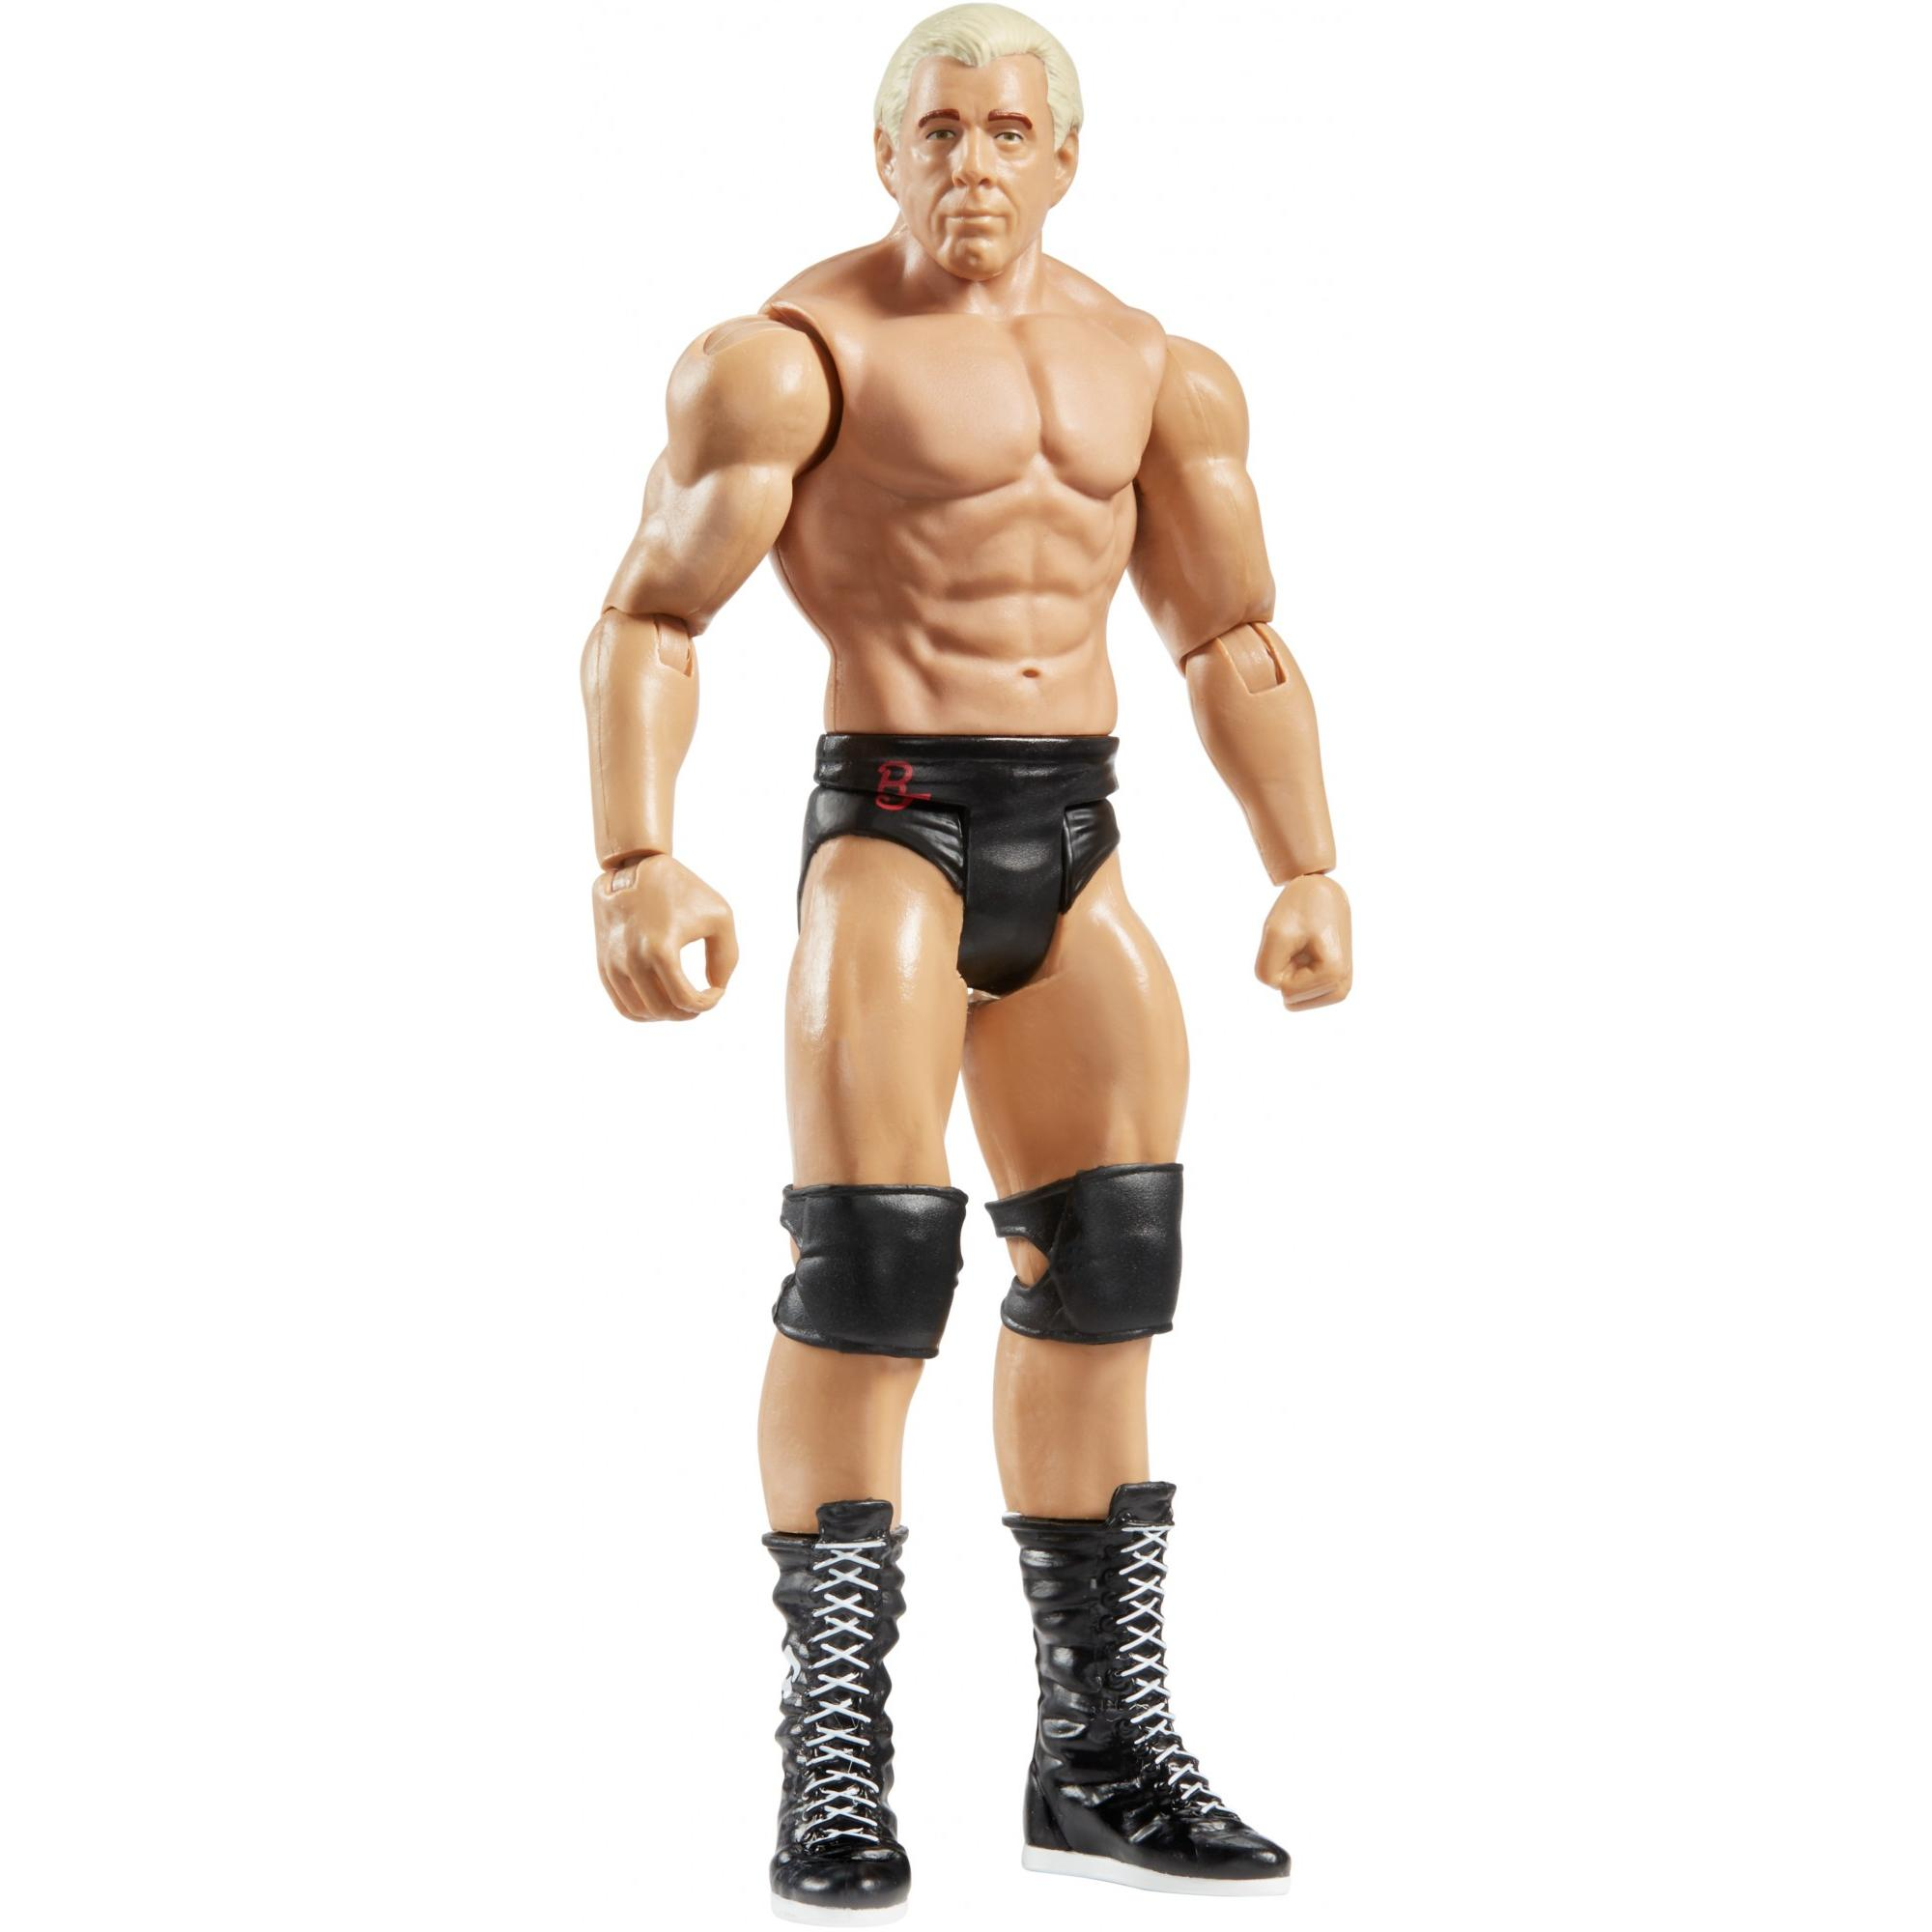 WWE Summerslam Ric Flair 6-Inch Action Figure with Authentic Details